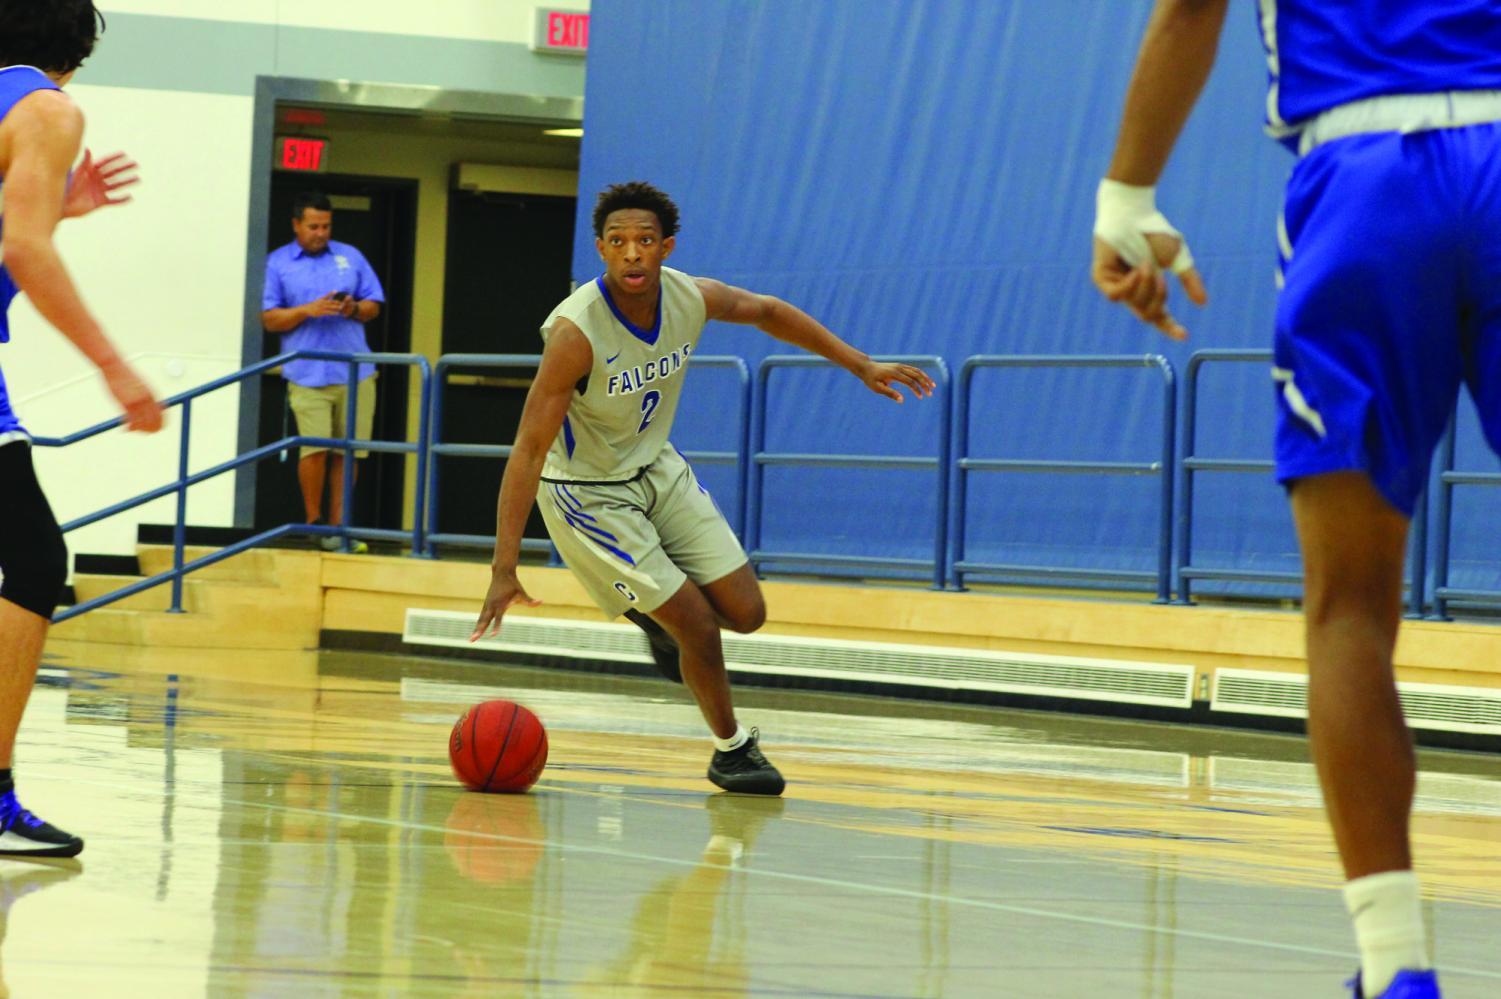 Down the Court: sophomore point guard Joshua Belvin dribbles the ball to the basket against Santa Monica College. The Falcons lost 71-61 on Nov. 22, 2019